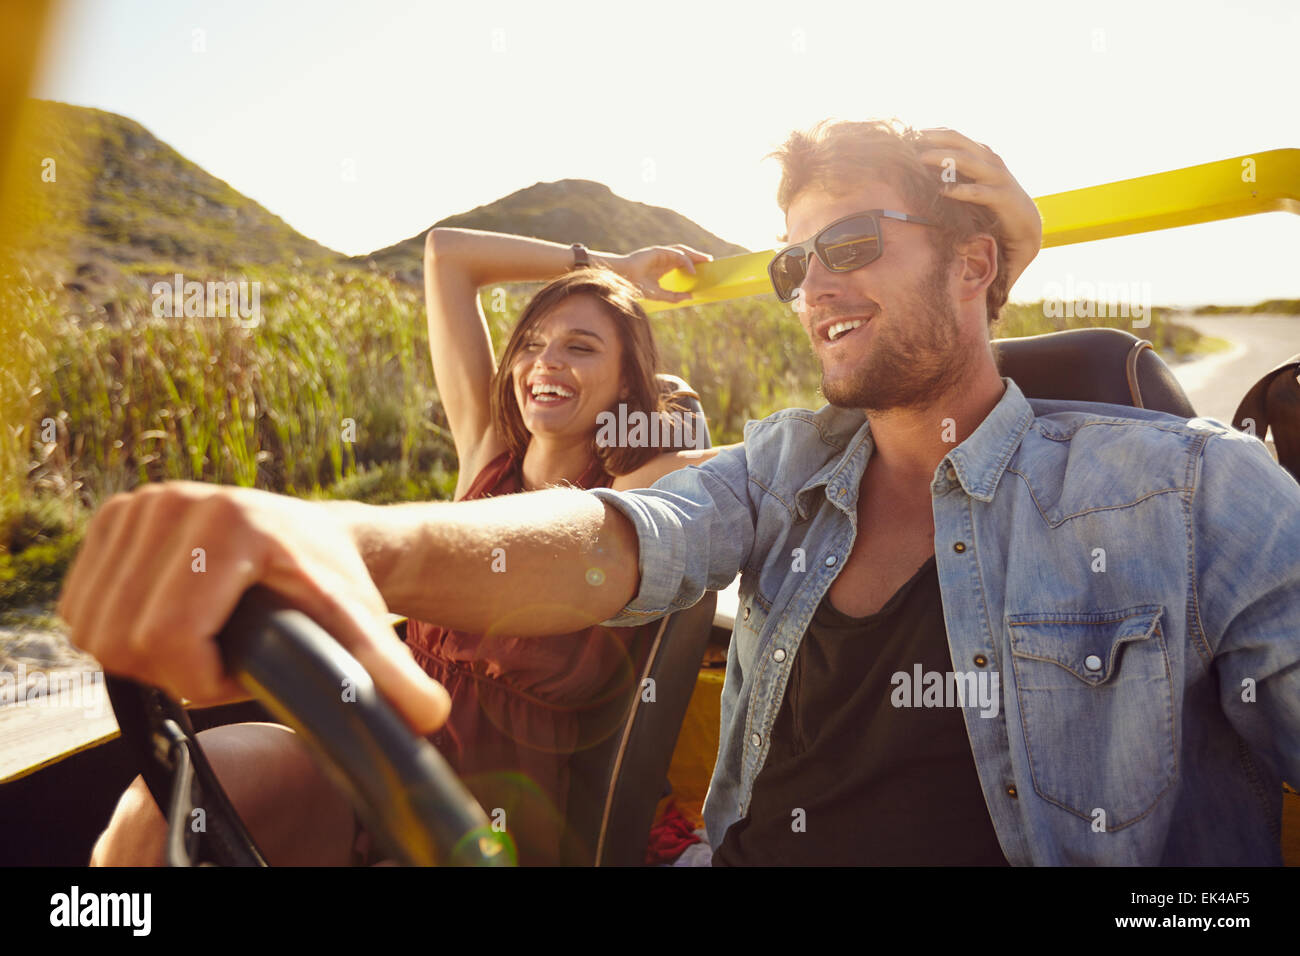 Cheerful young couple on road trip. Young man driving open topped car with woman smiling. - Stock Image